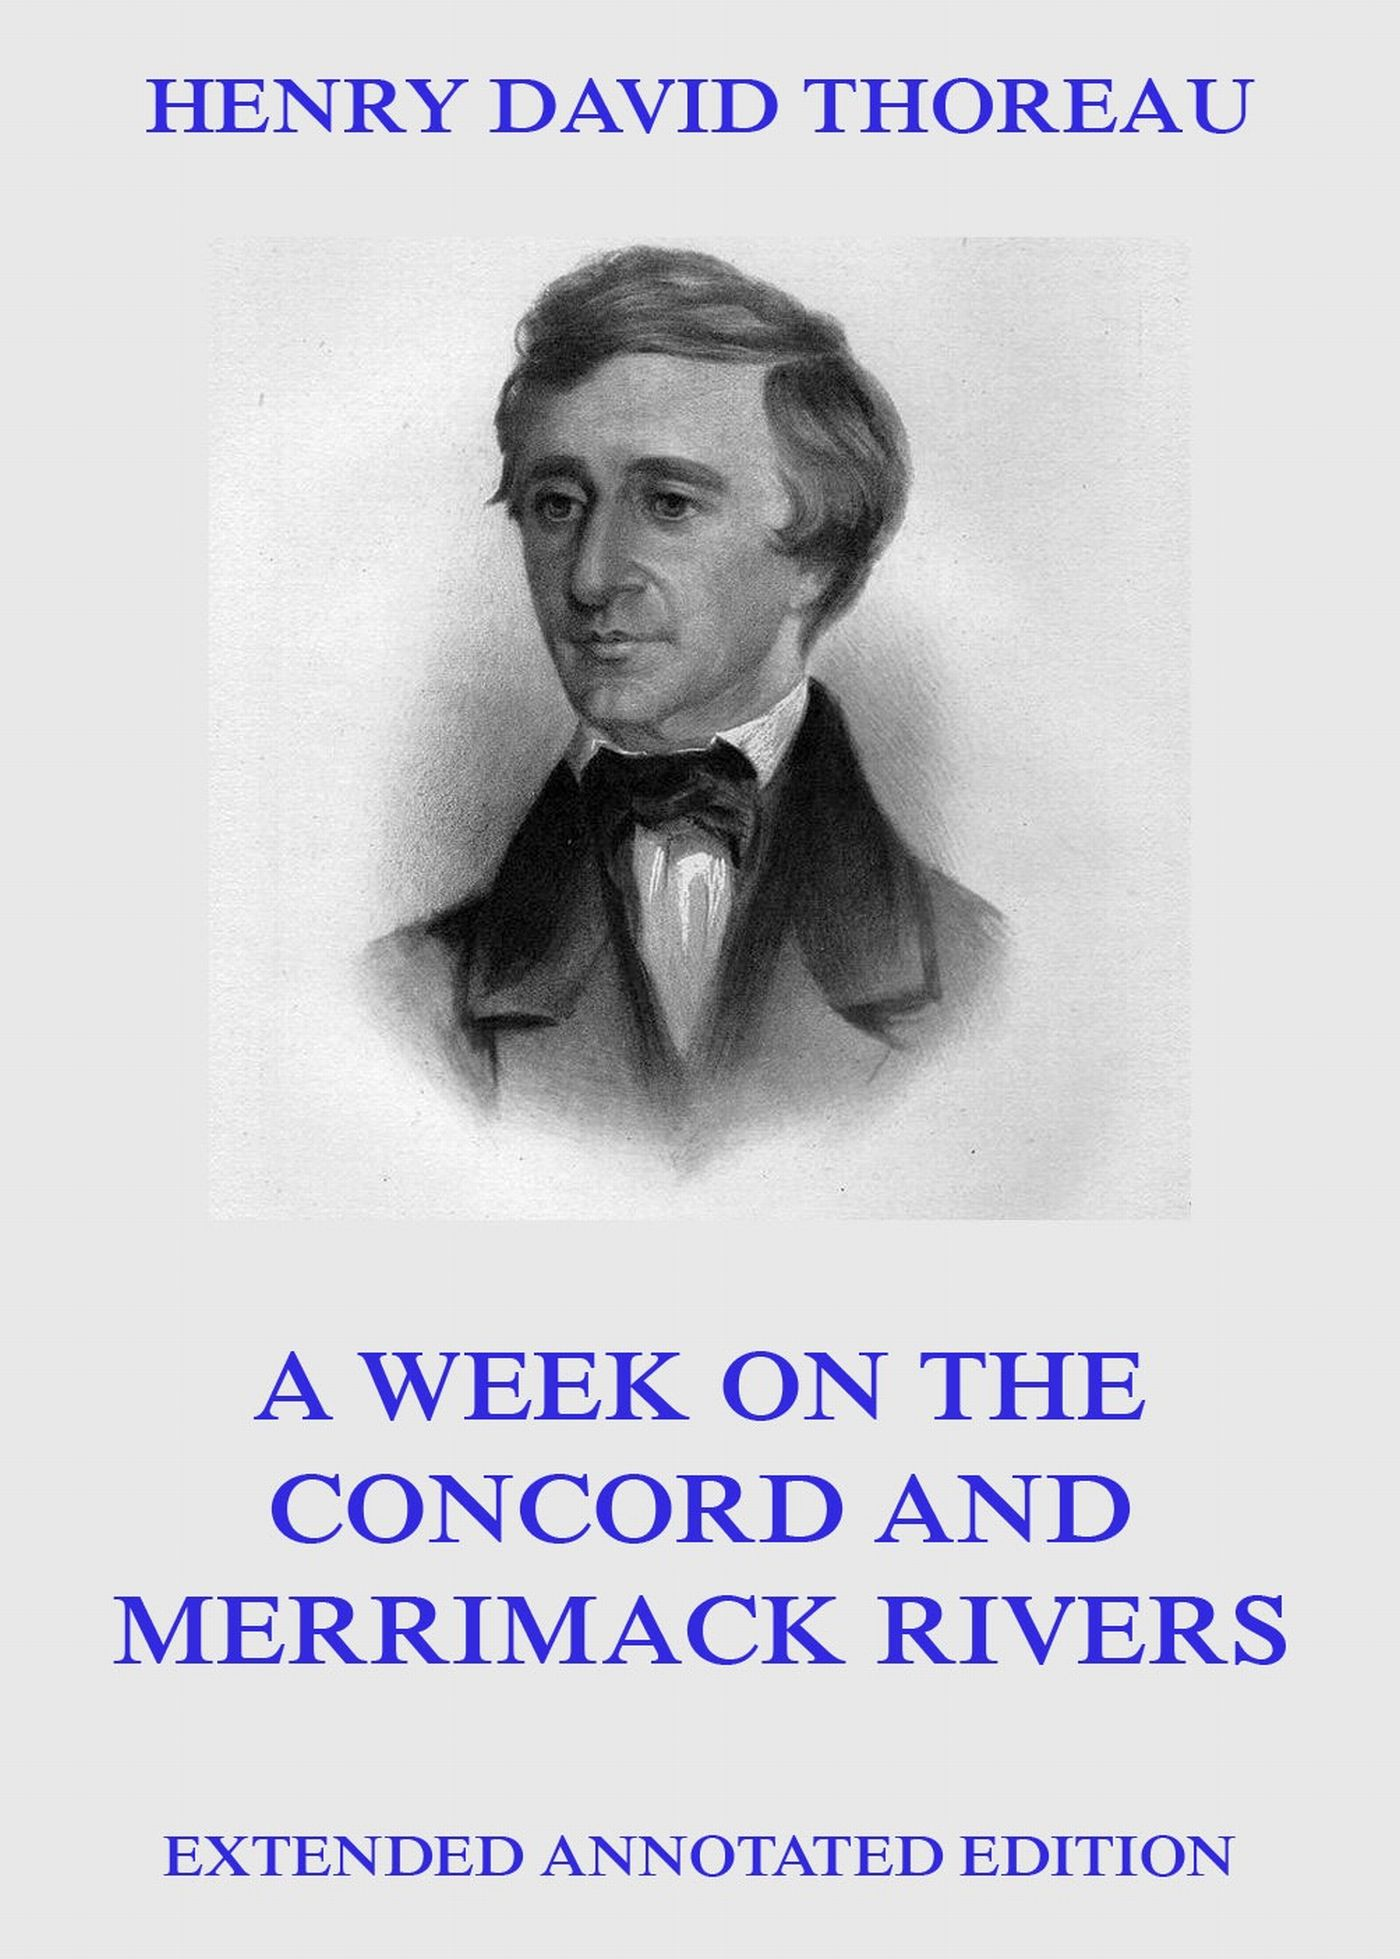 Henry David Thoreau A Week On The Concord And Merrimack Rivers